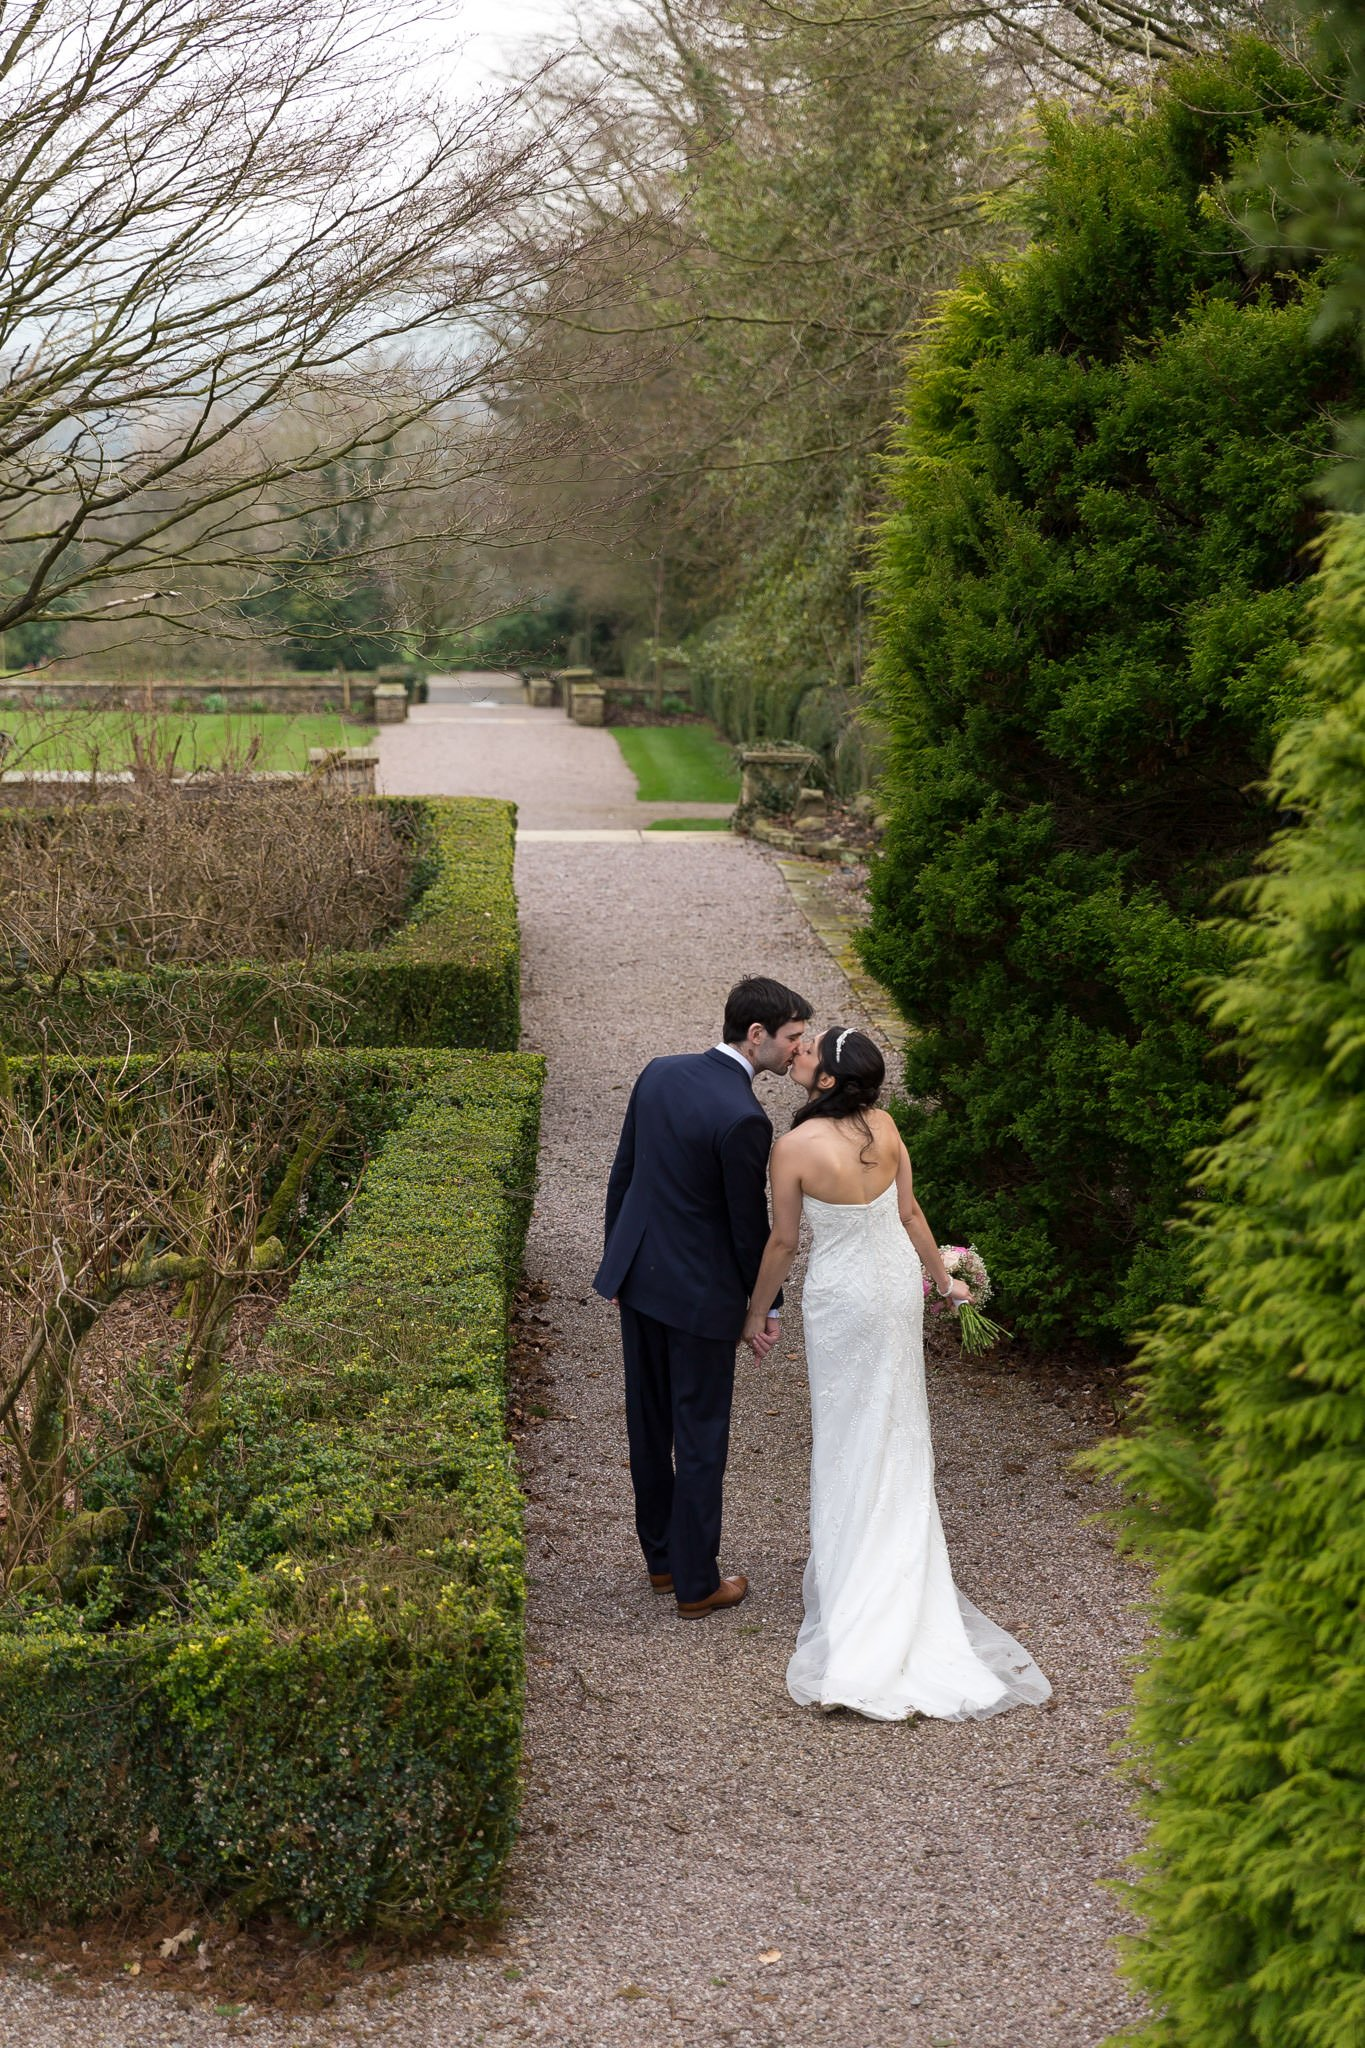 Wedding photos in Eaves Hall gardens